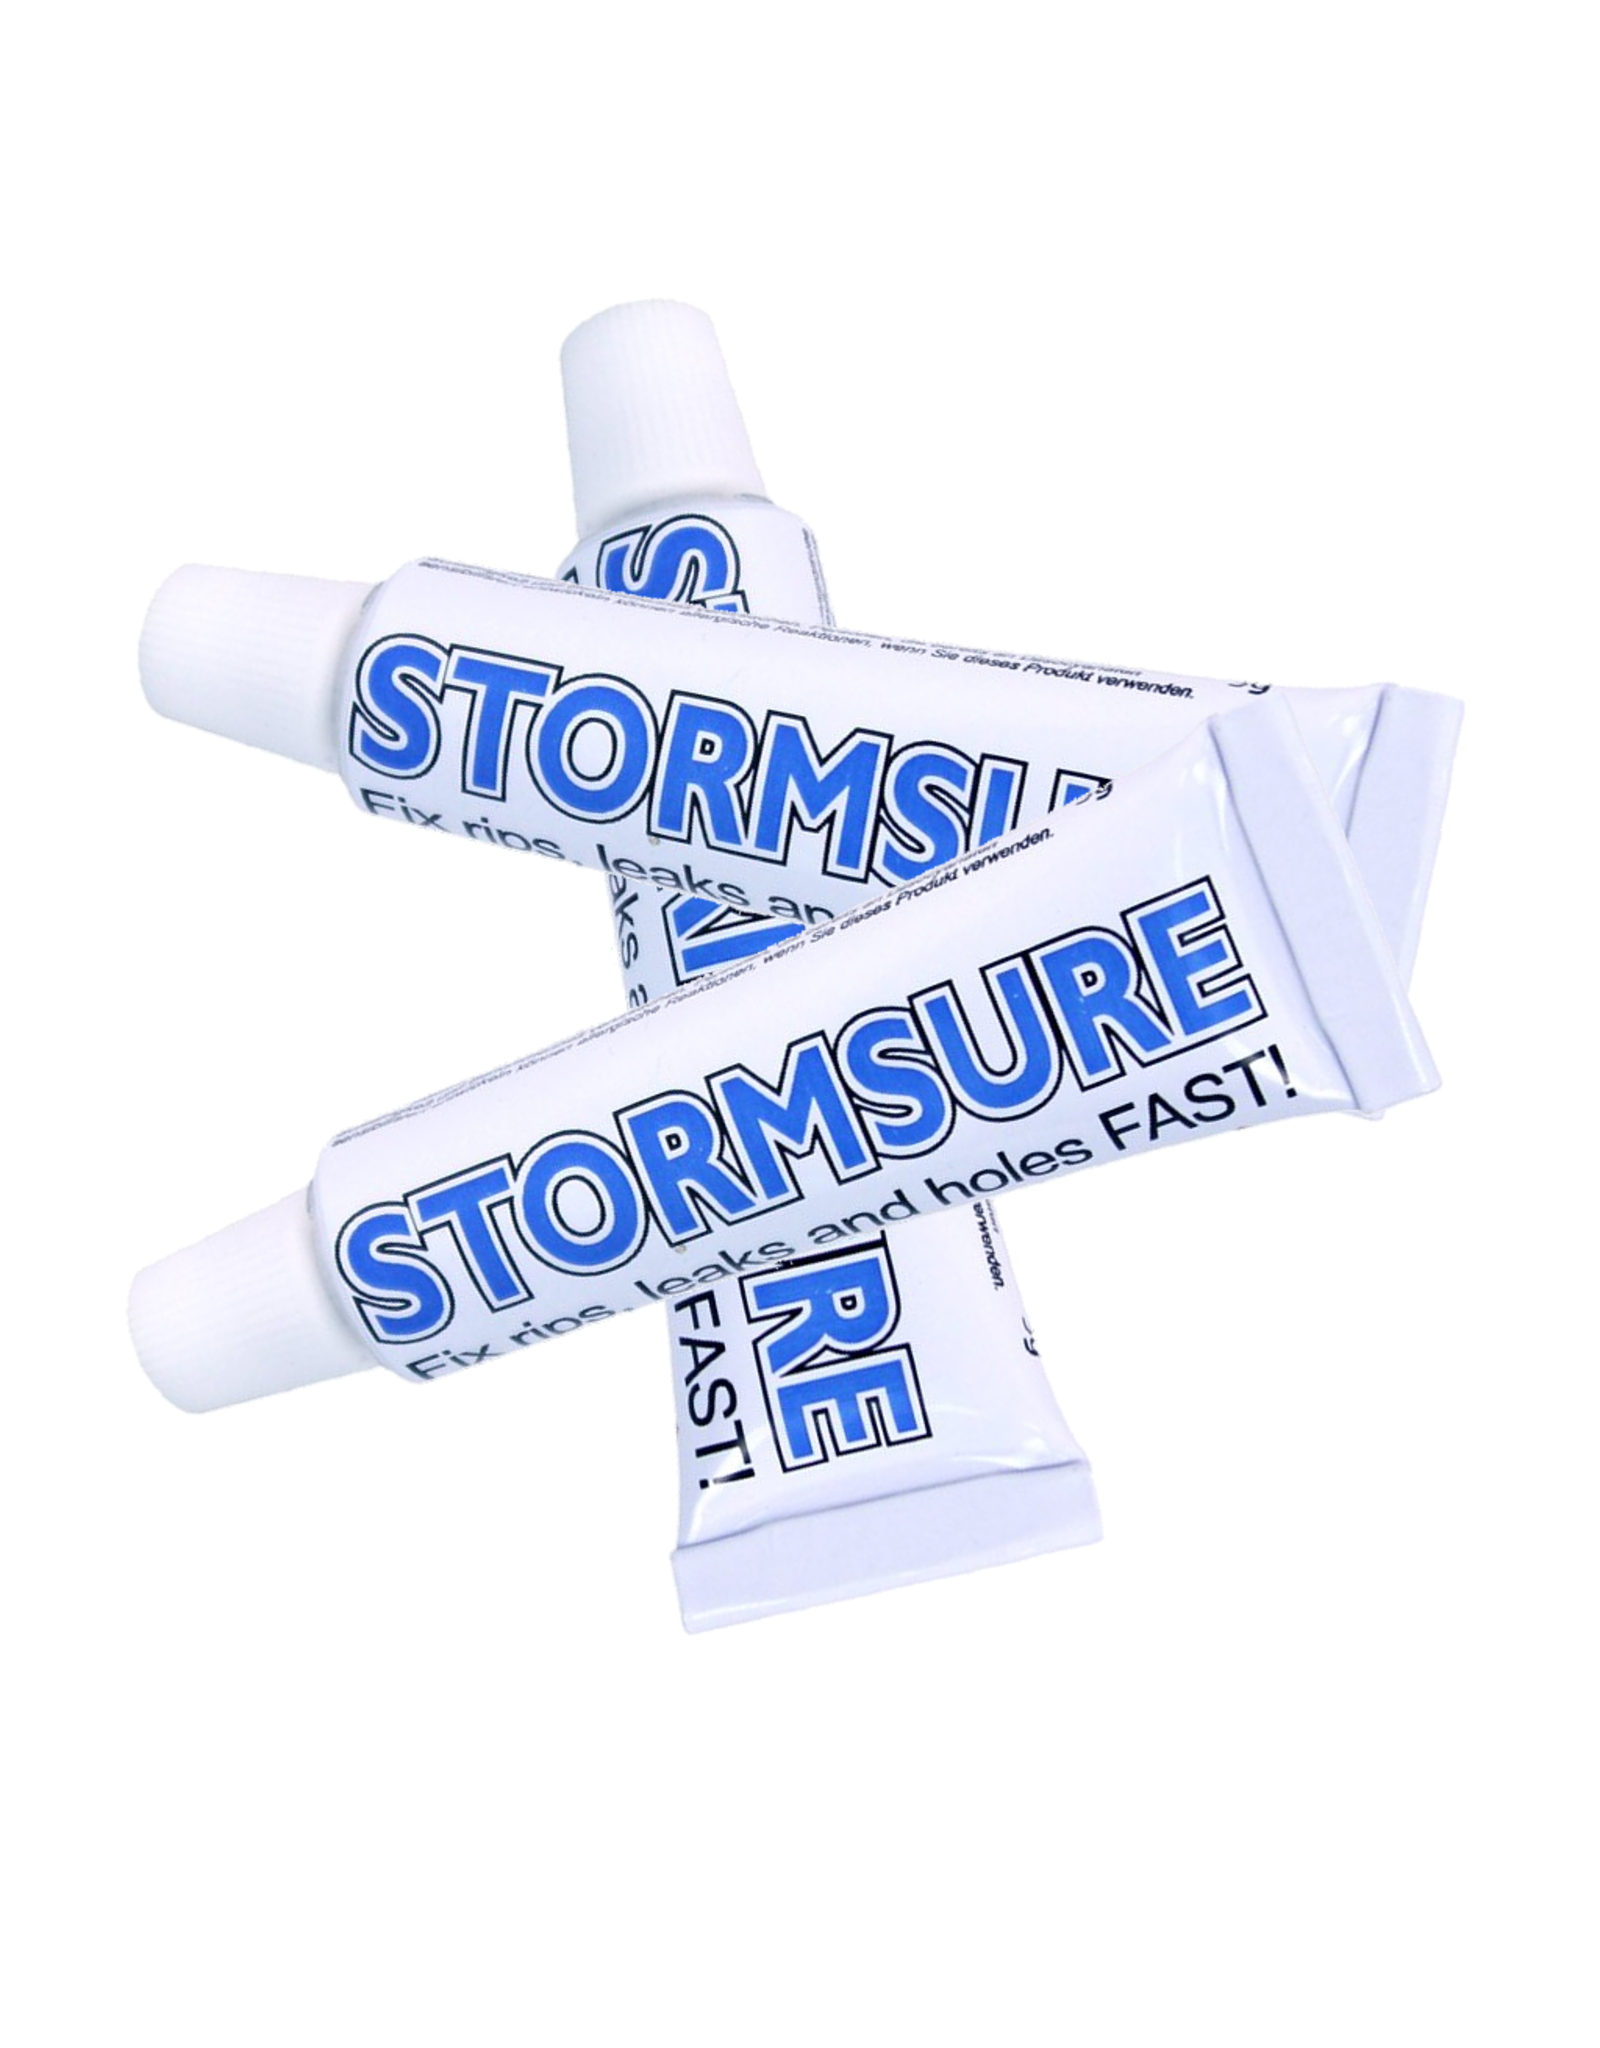 Atlan Stormsure urethane magic Glue, 3 tubes of 5 gramme